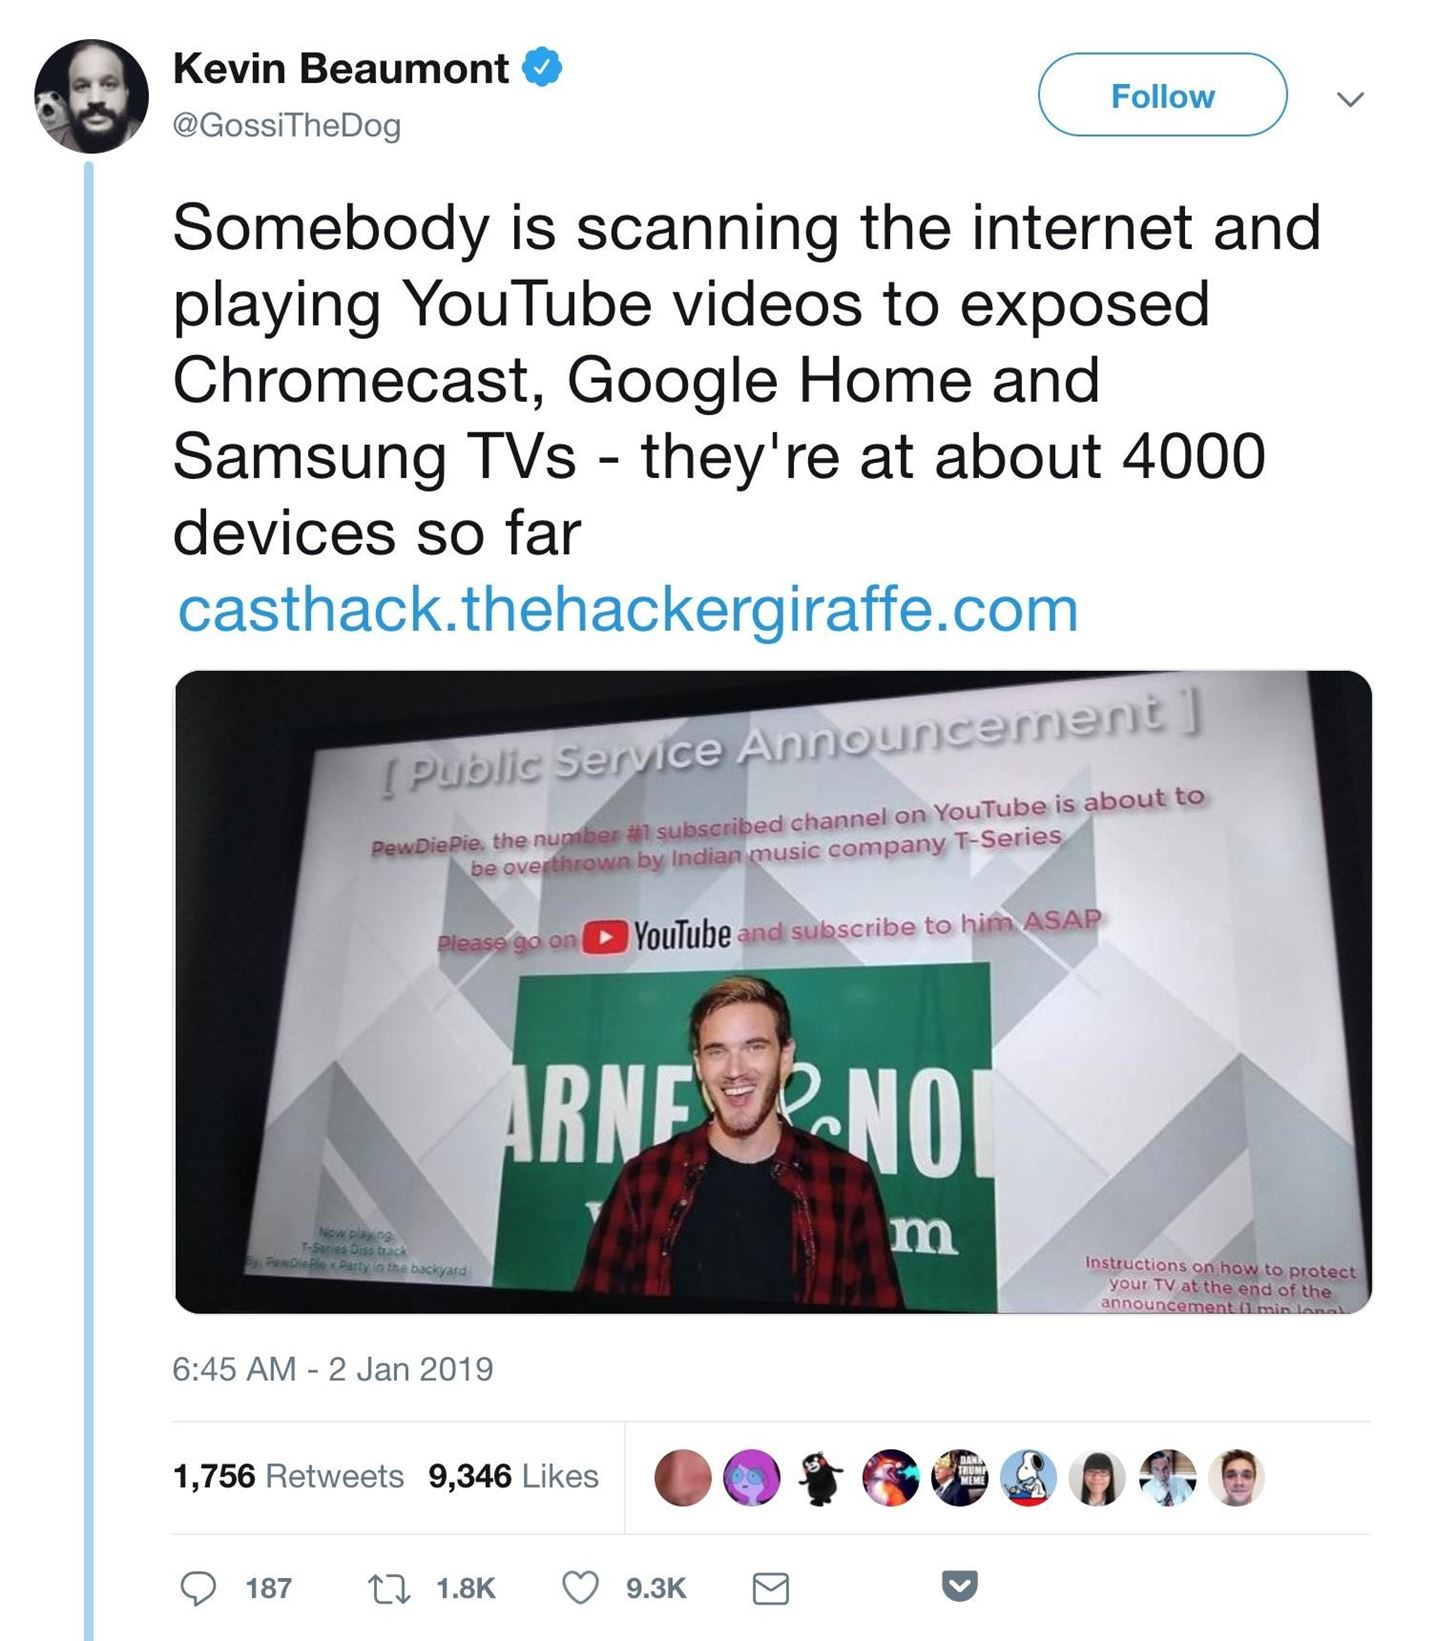 How to Hack Together a YouTube Playing Botnet Using Chromecasts